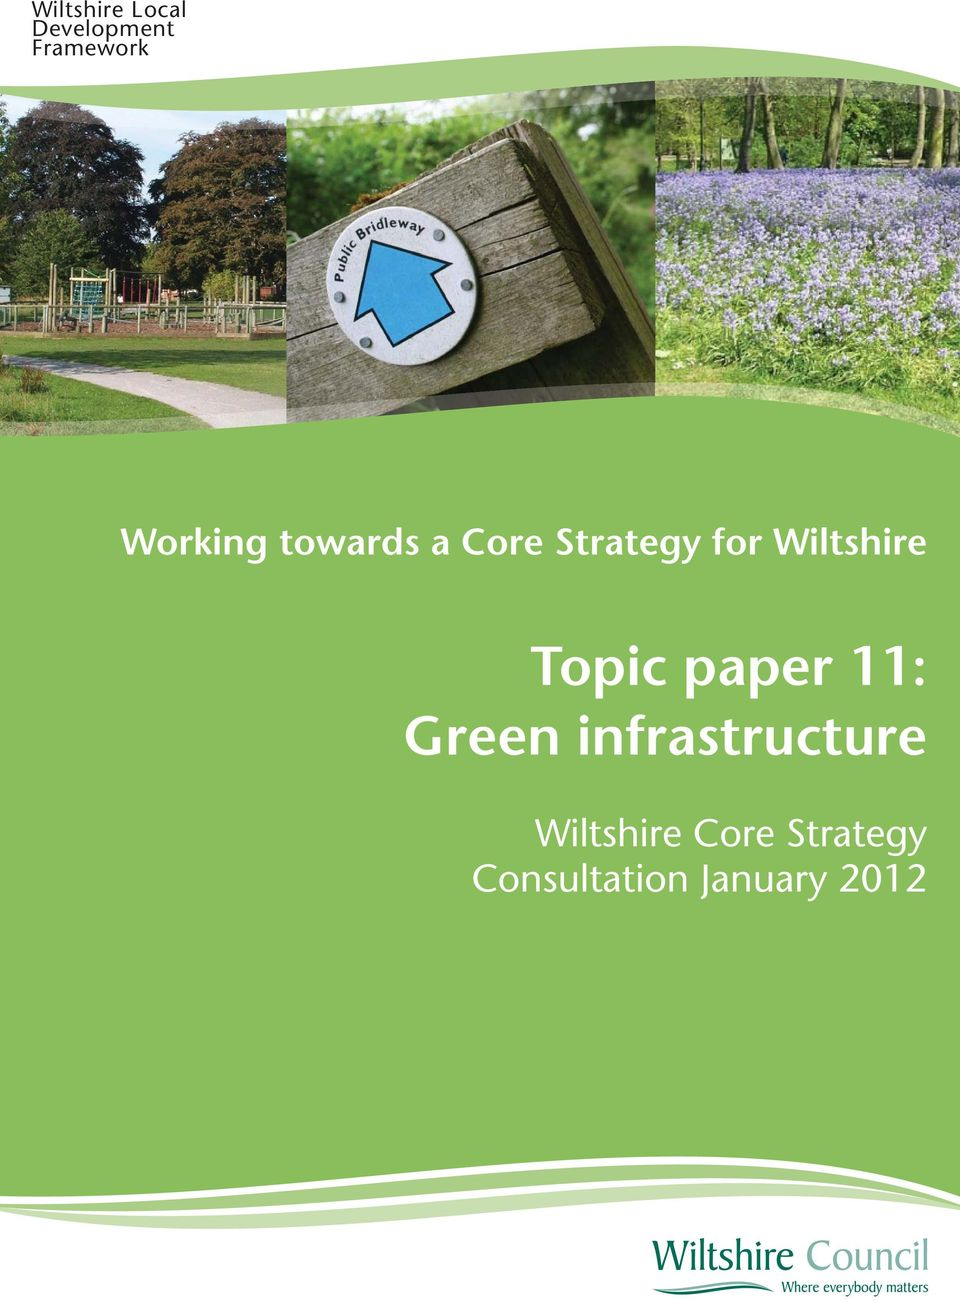 Wiltshire Topic paper 11: Green